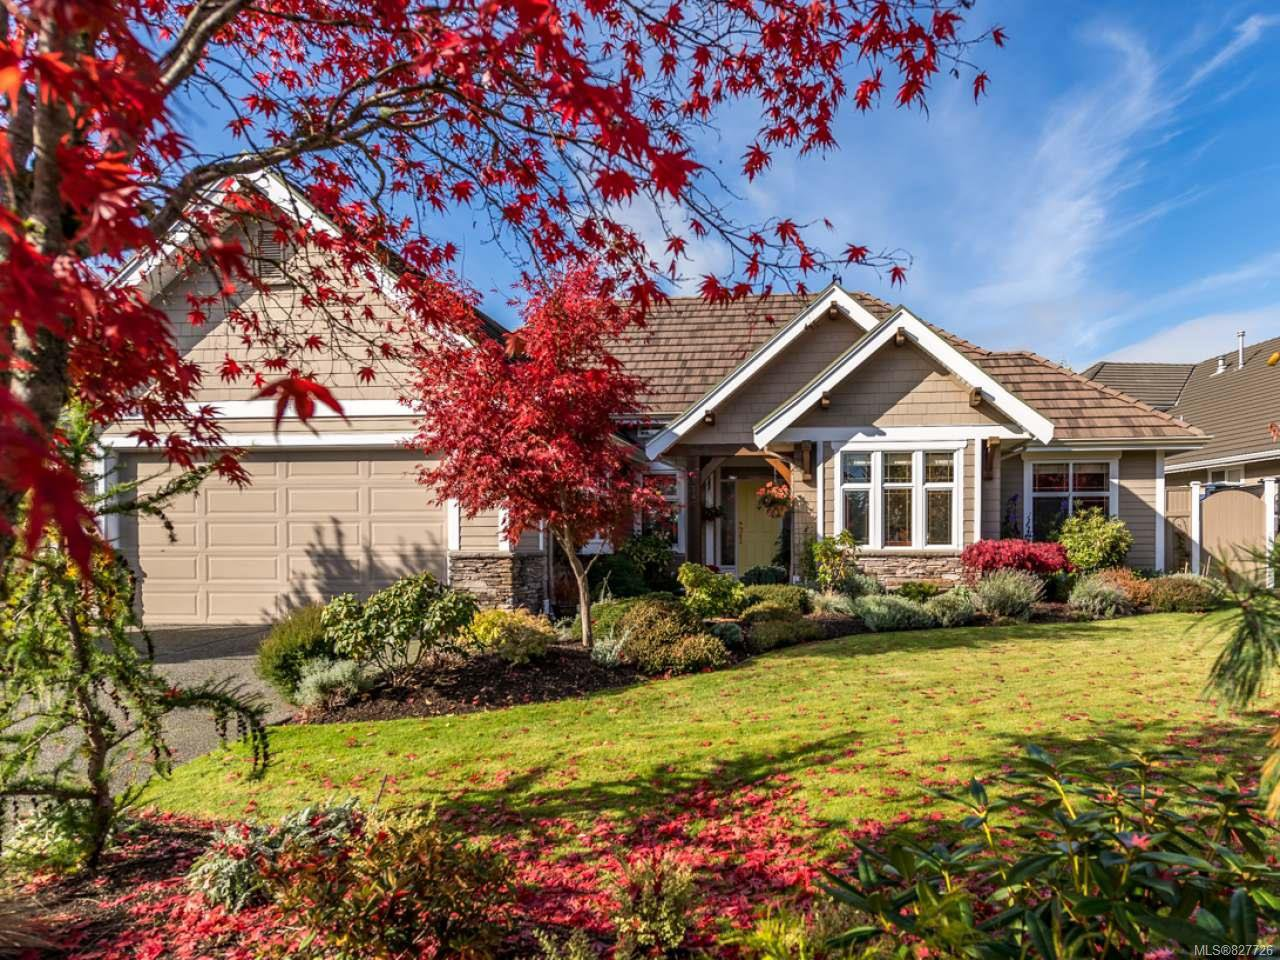 Main Photo: 3240 Majestic Dr in COURTENAY: CV Crown Isle House for sale (Comox Valley)  : MLS®# 827726